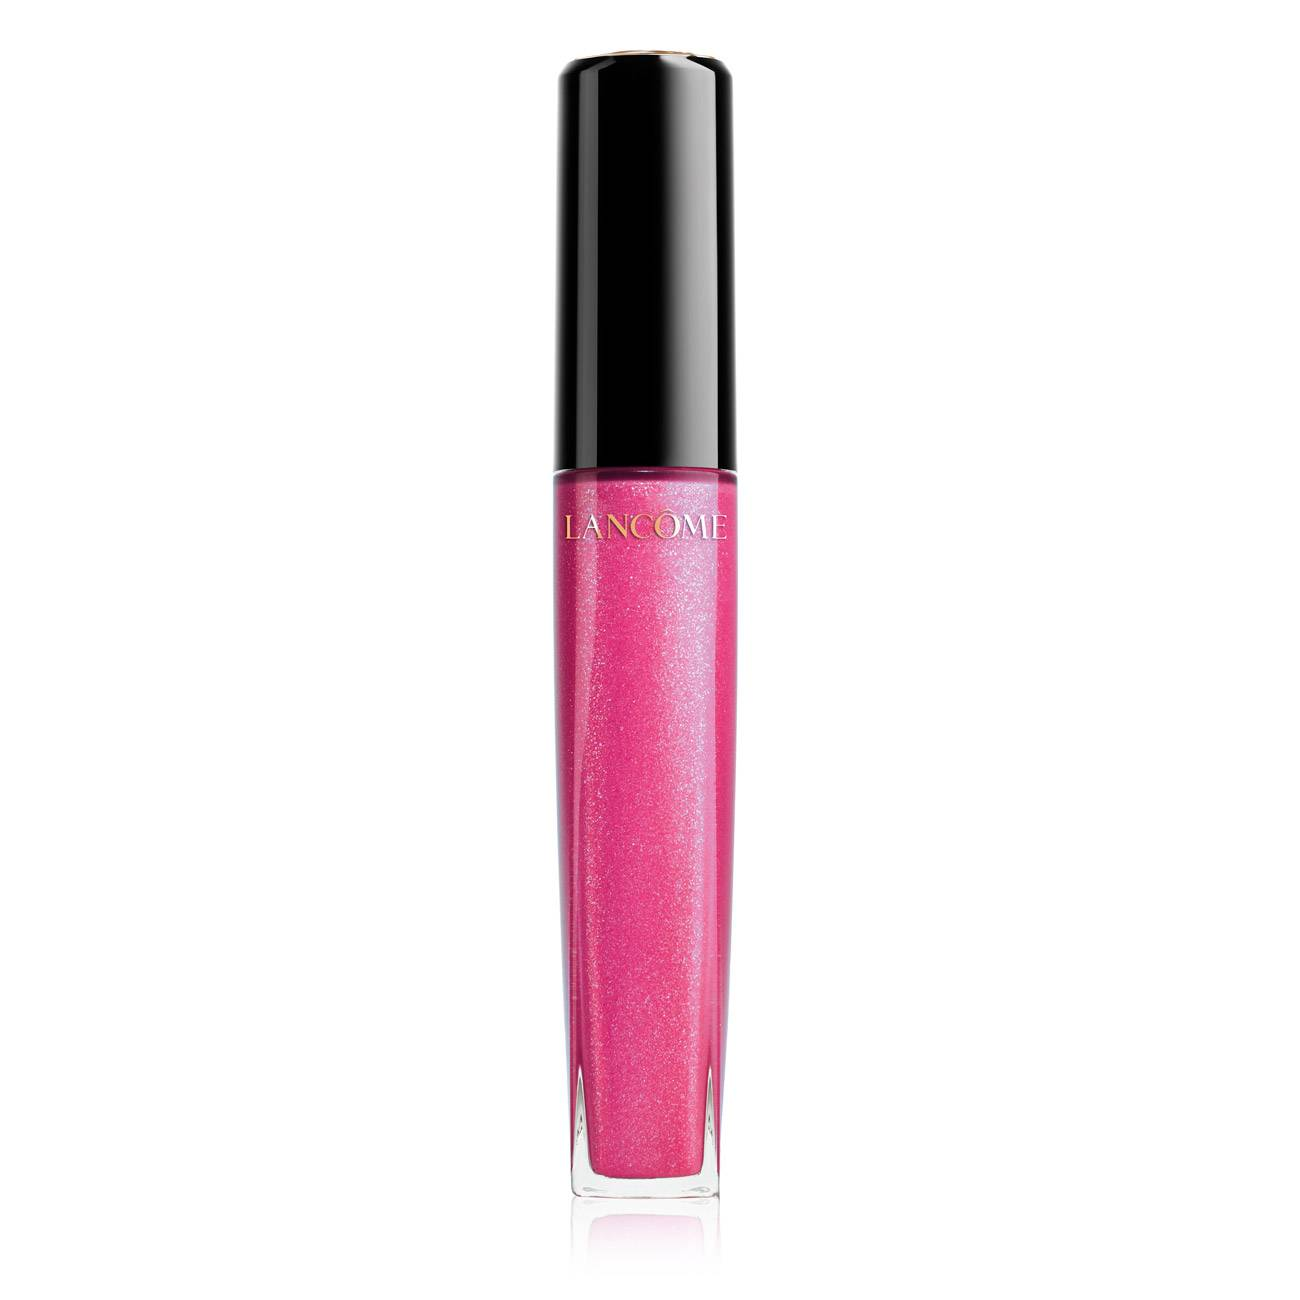 L'absolu Velvet Matte 181 383 Lancôme imagine 2021 bestvalue.eu